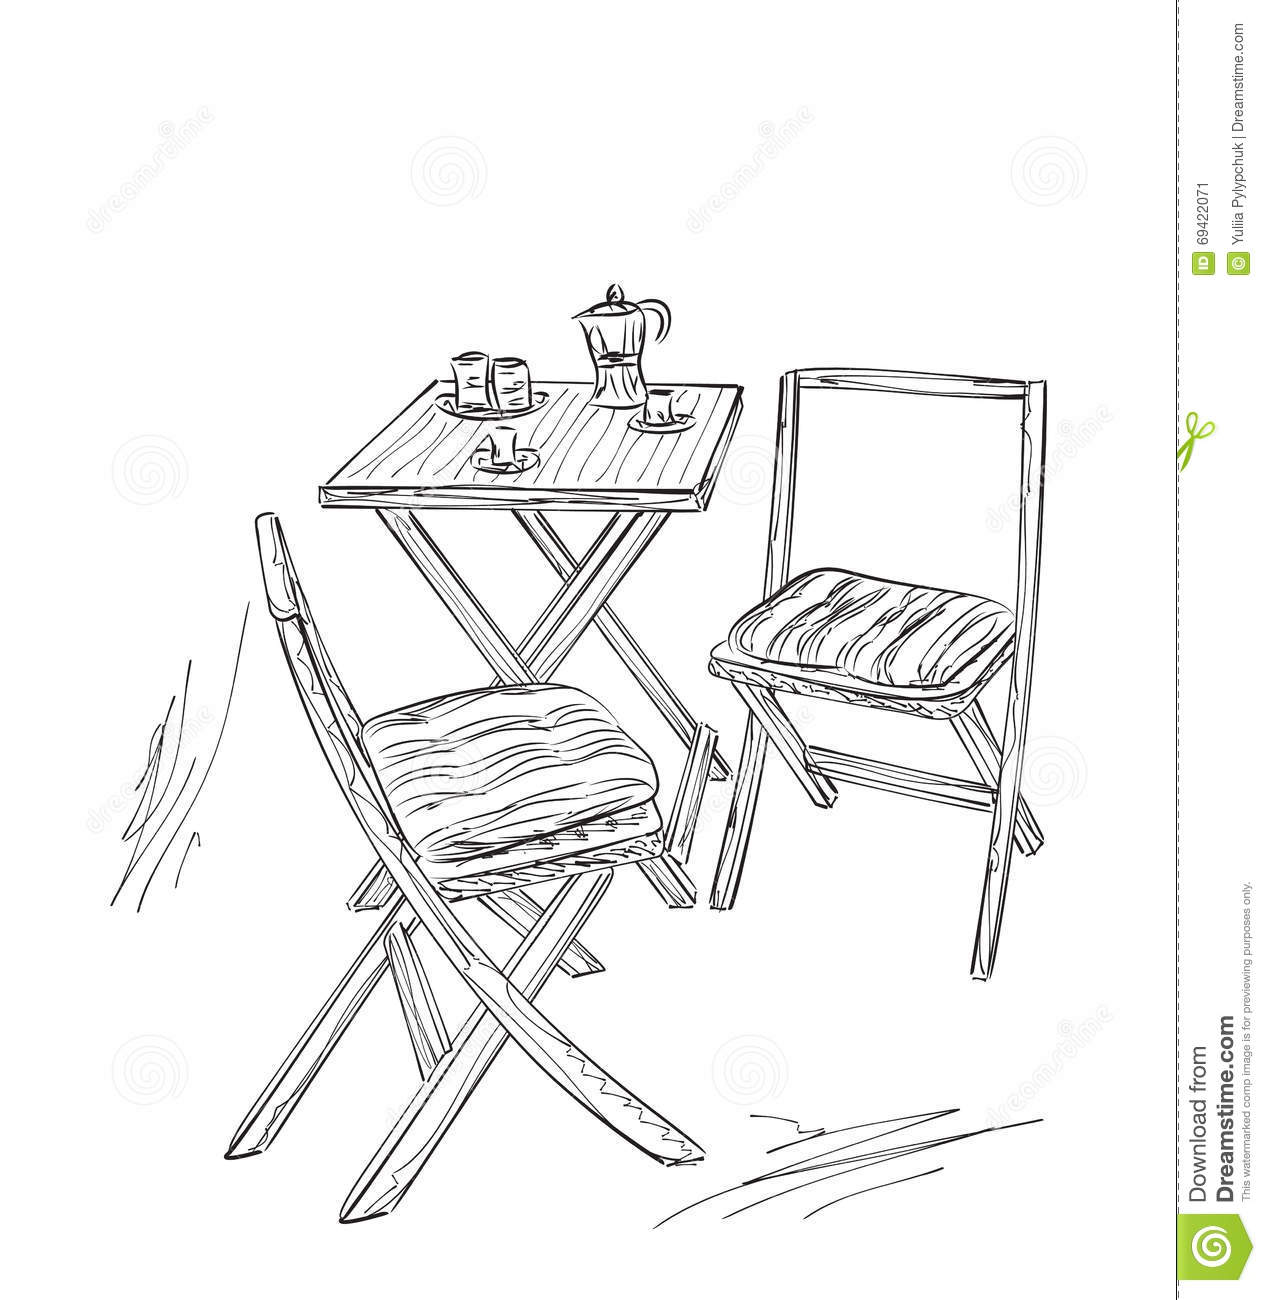 Furniture in summer cafe chair and table sketch stock for Table design sketch